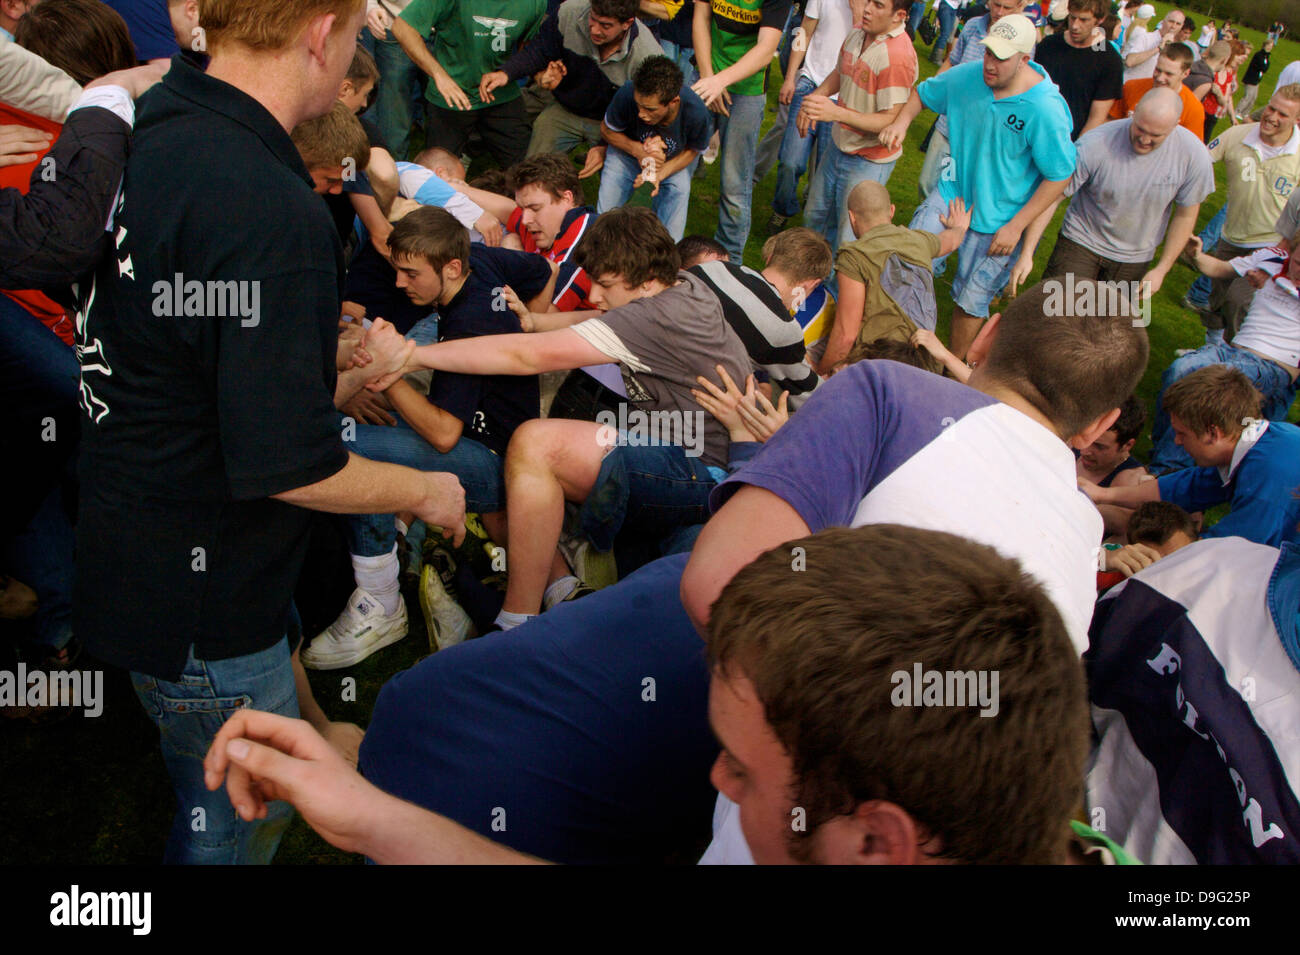 The Old Annual Custom of Bottle-kicking, Hallaton, Leicestershire, England, UK - Stock Image